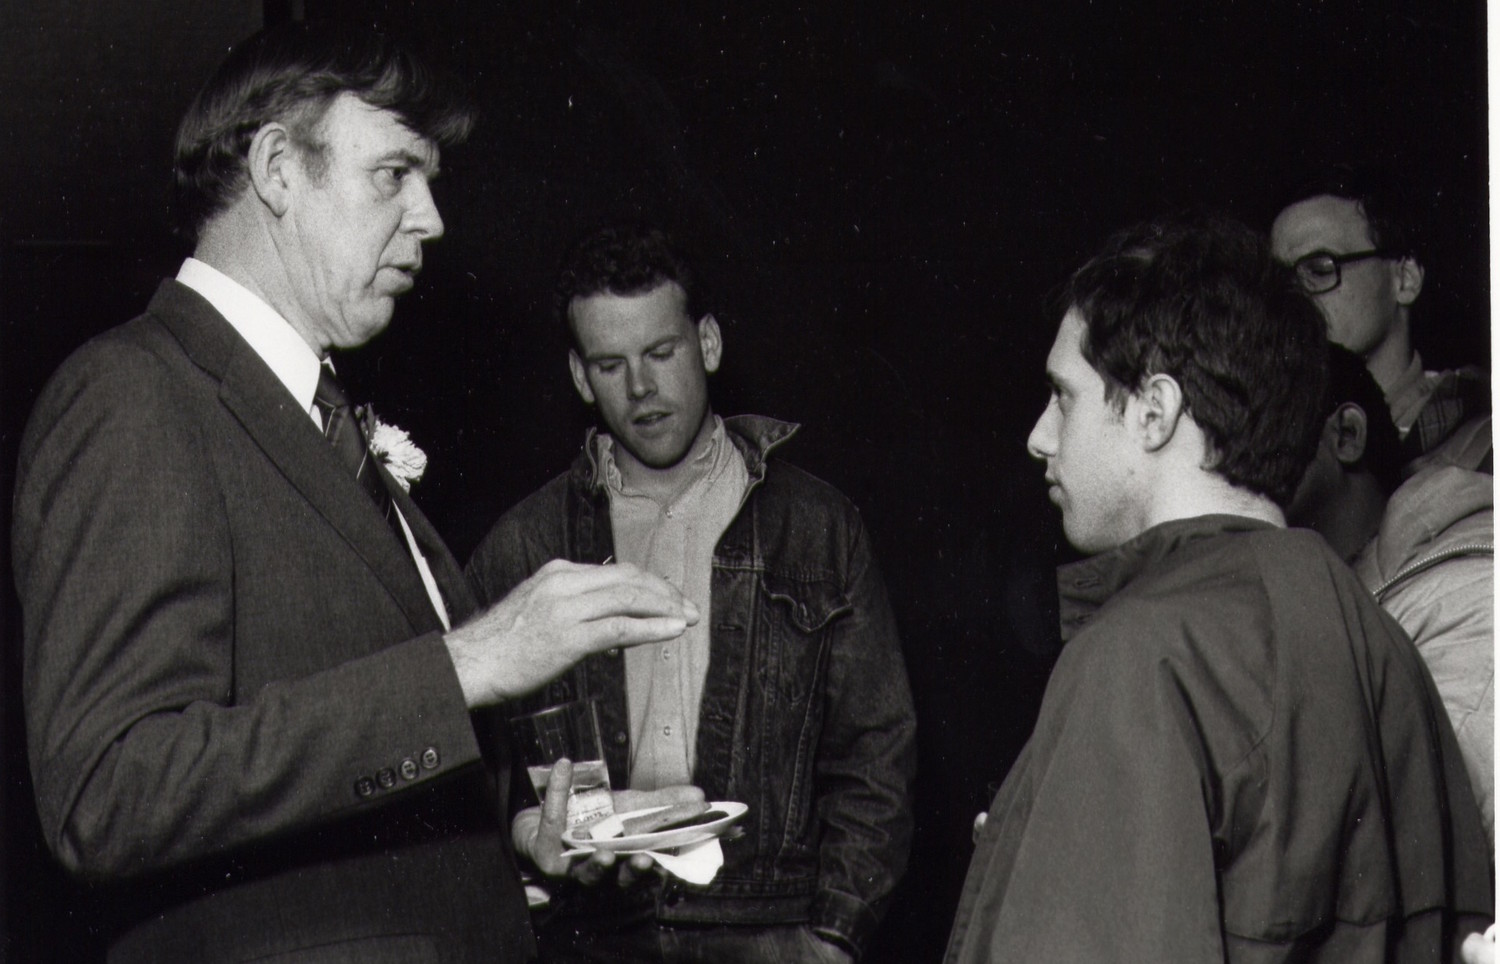 Prof. David S. Wyman with students in 1985.